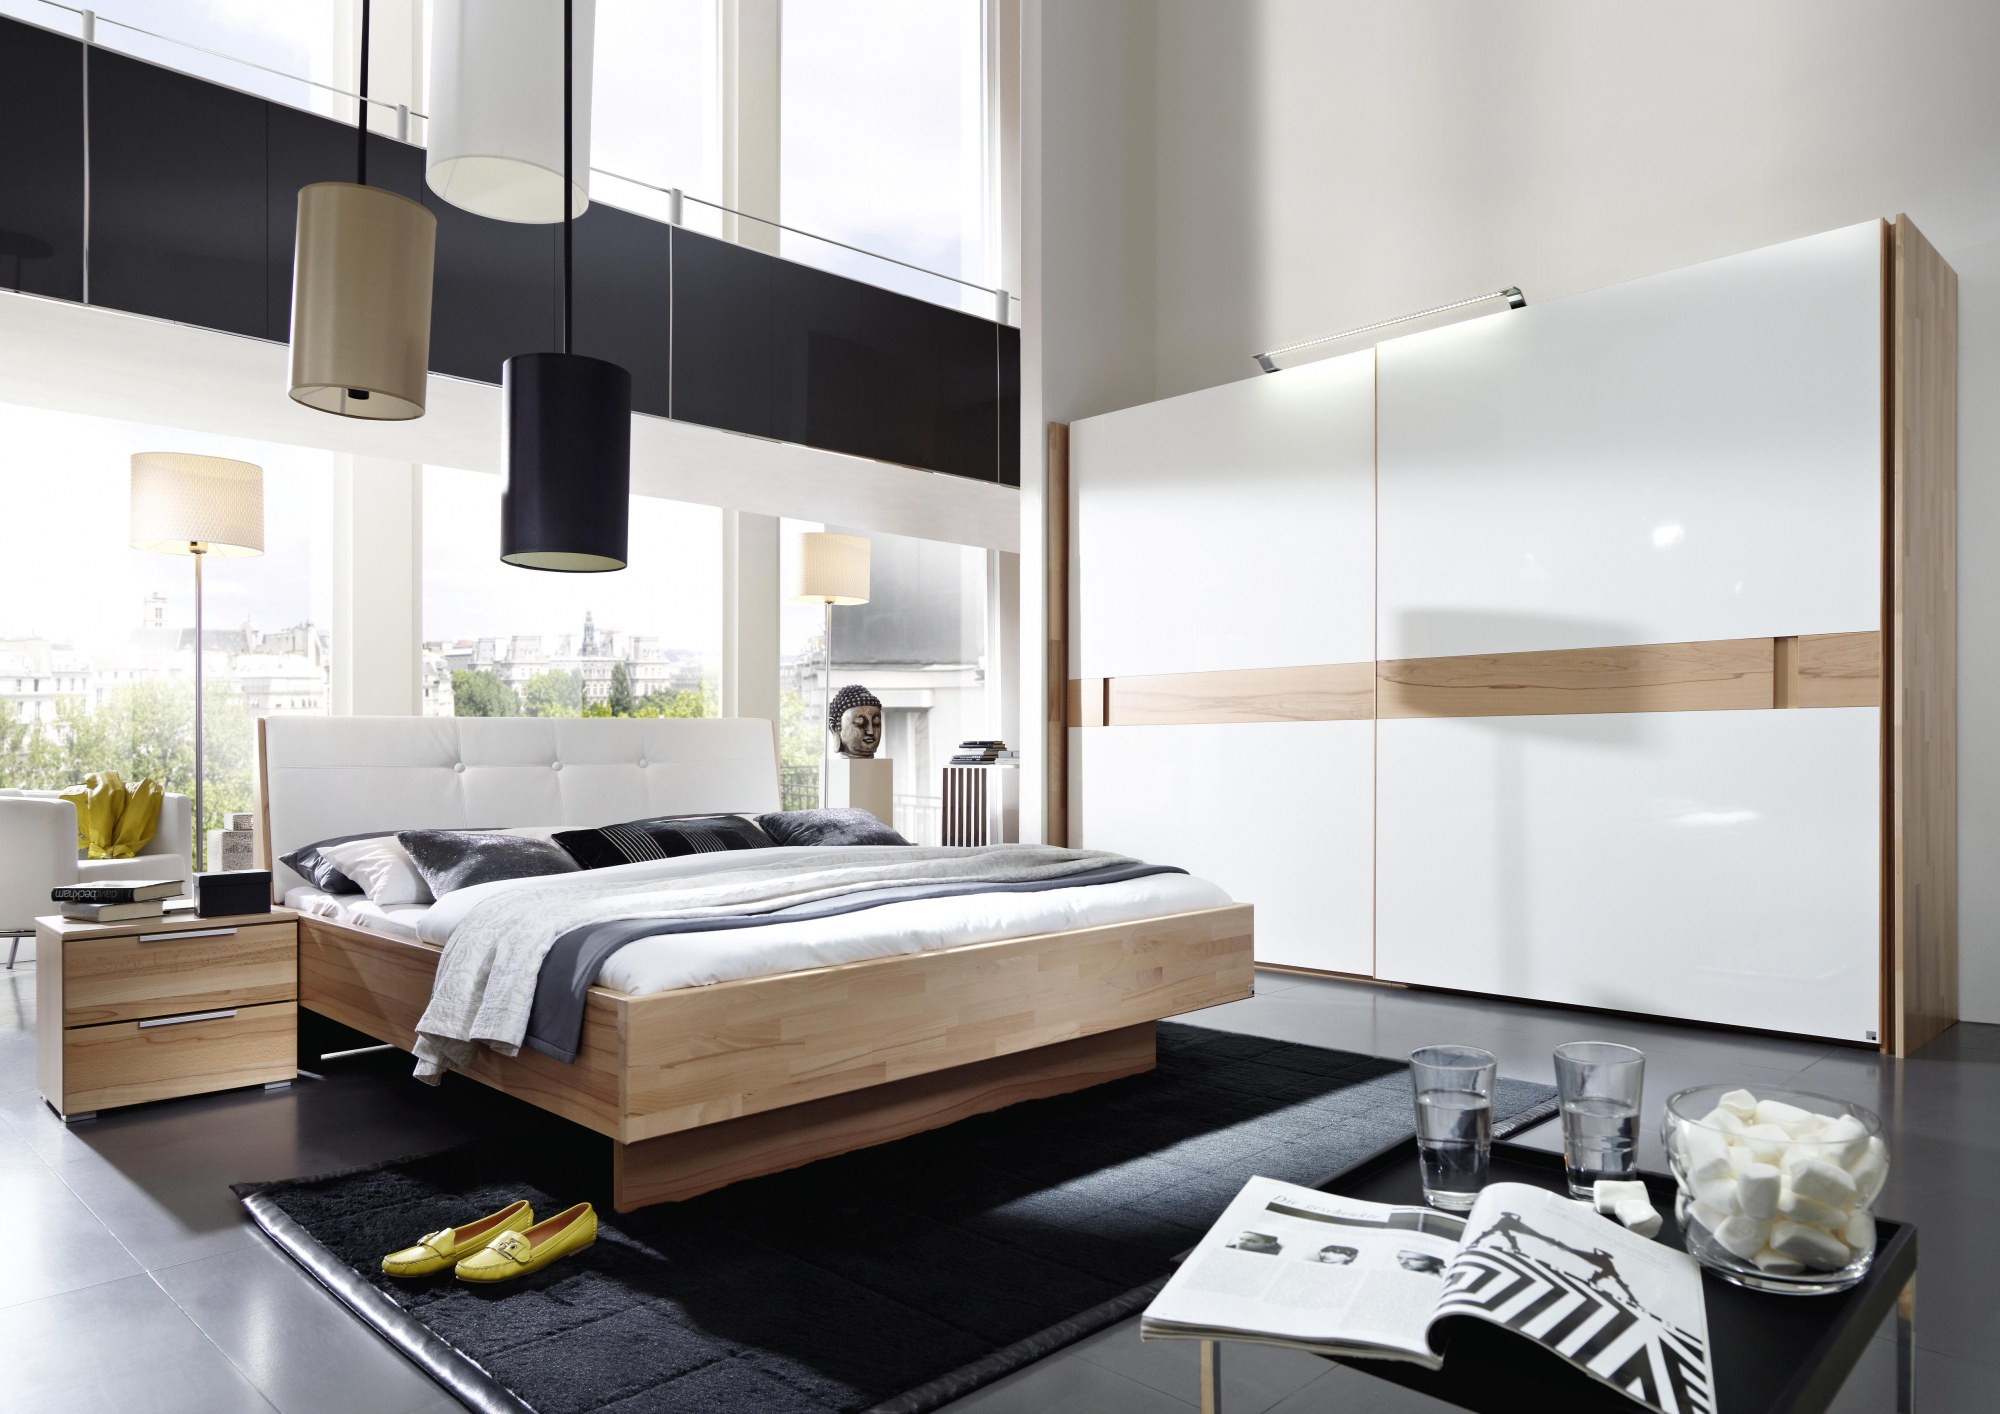 schlafzimmerm bel deutsche g tegemeinschaft m bel e v. Black Bedroom Furniture Sets. Home Design Ideas